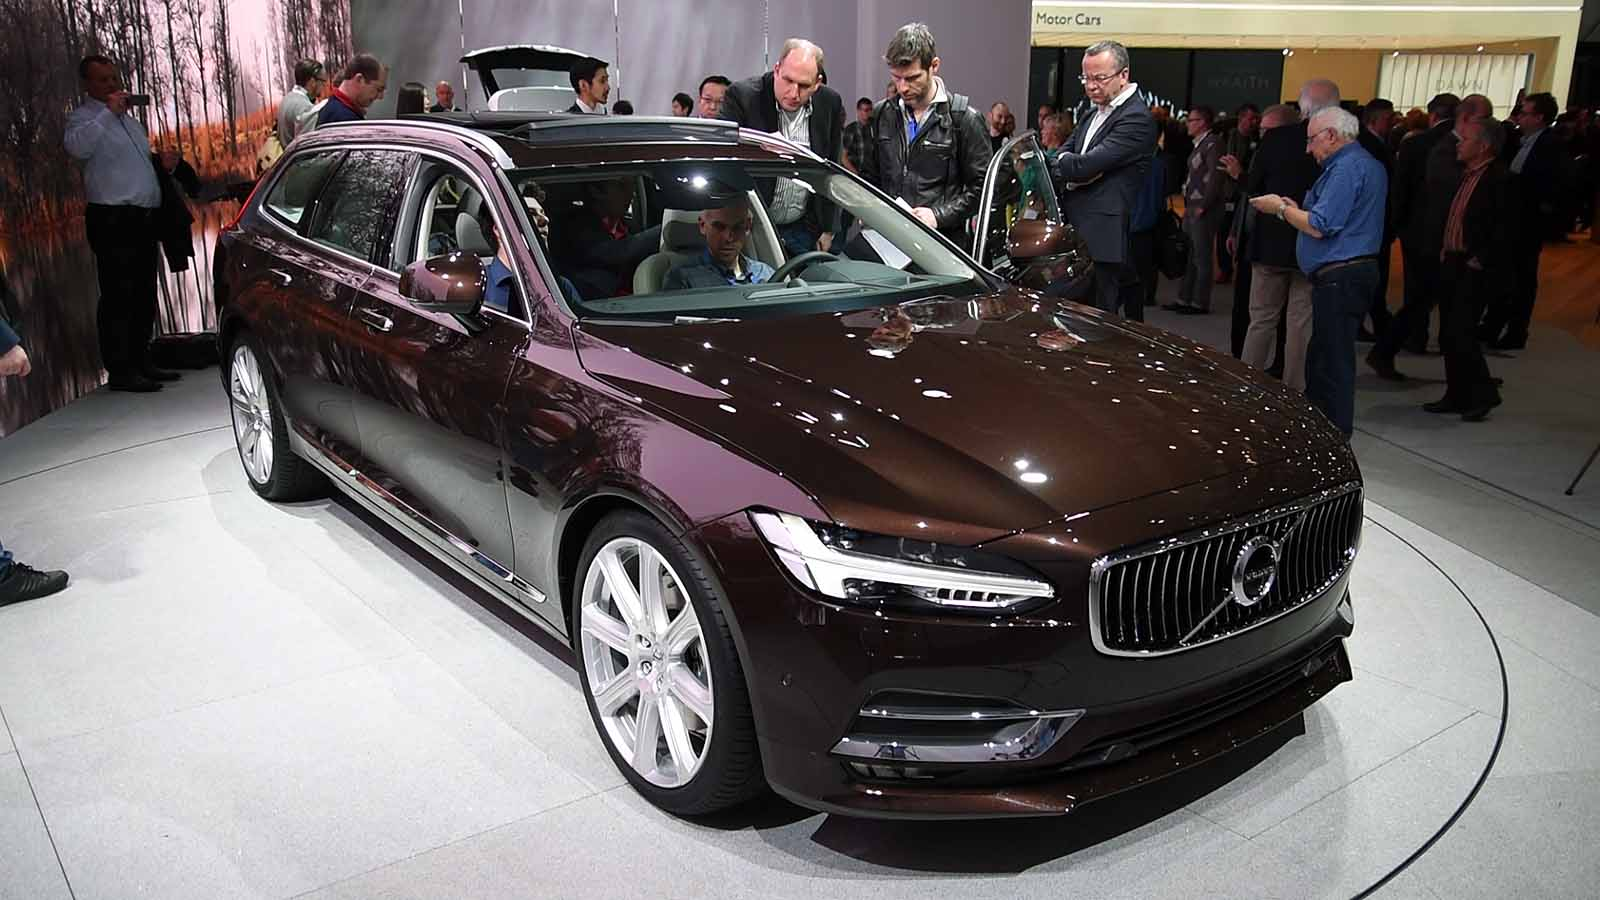 2017 Volvo V90 Station Wagon Makes Global Debut » AutoGuide.com News